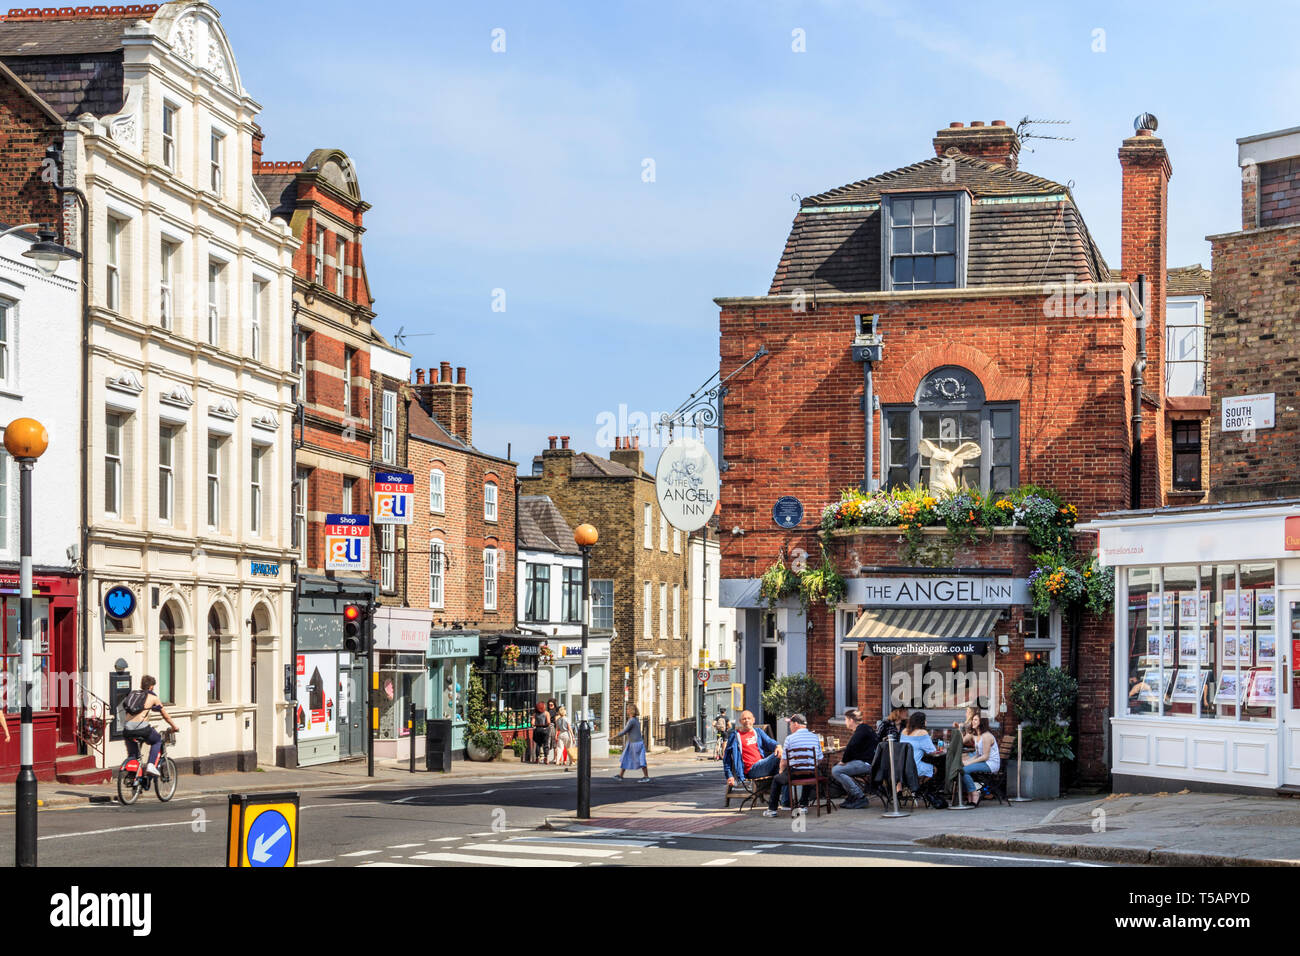 Customers drinking outside the historic Angel Inn in Highgate Village, London, UK, on a warm and sunny Easter weekend - Stock Image